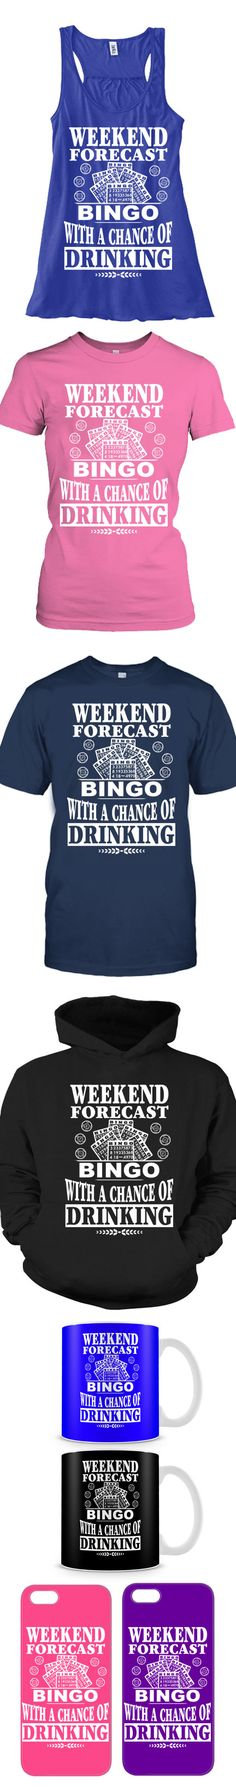 Love Bingo? Then Click The Image To Buy It Now or Tag Someone You Want To Buy This For.